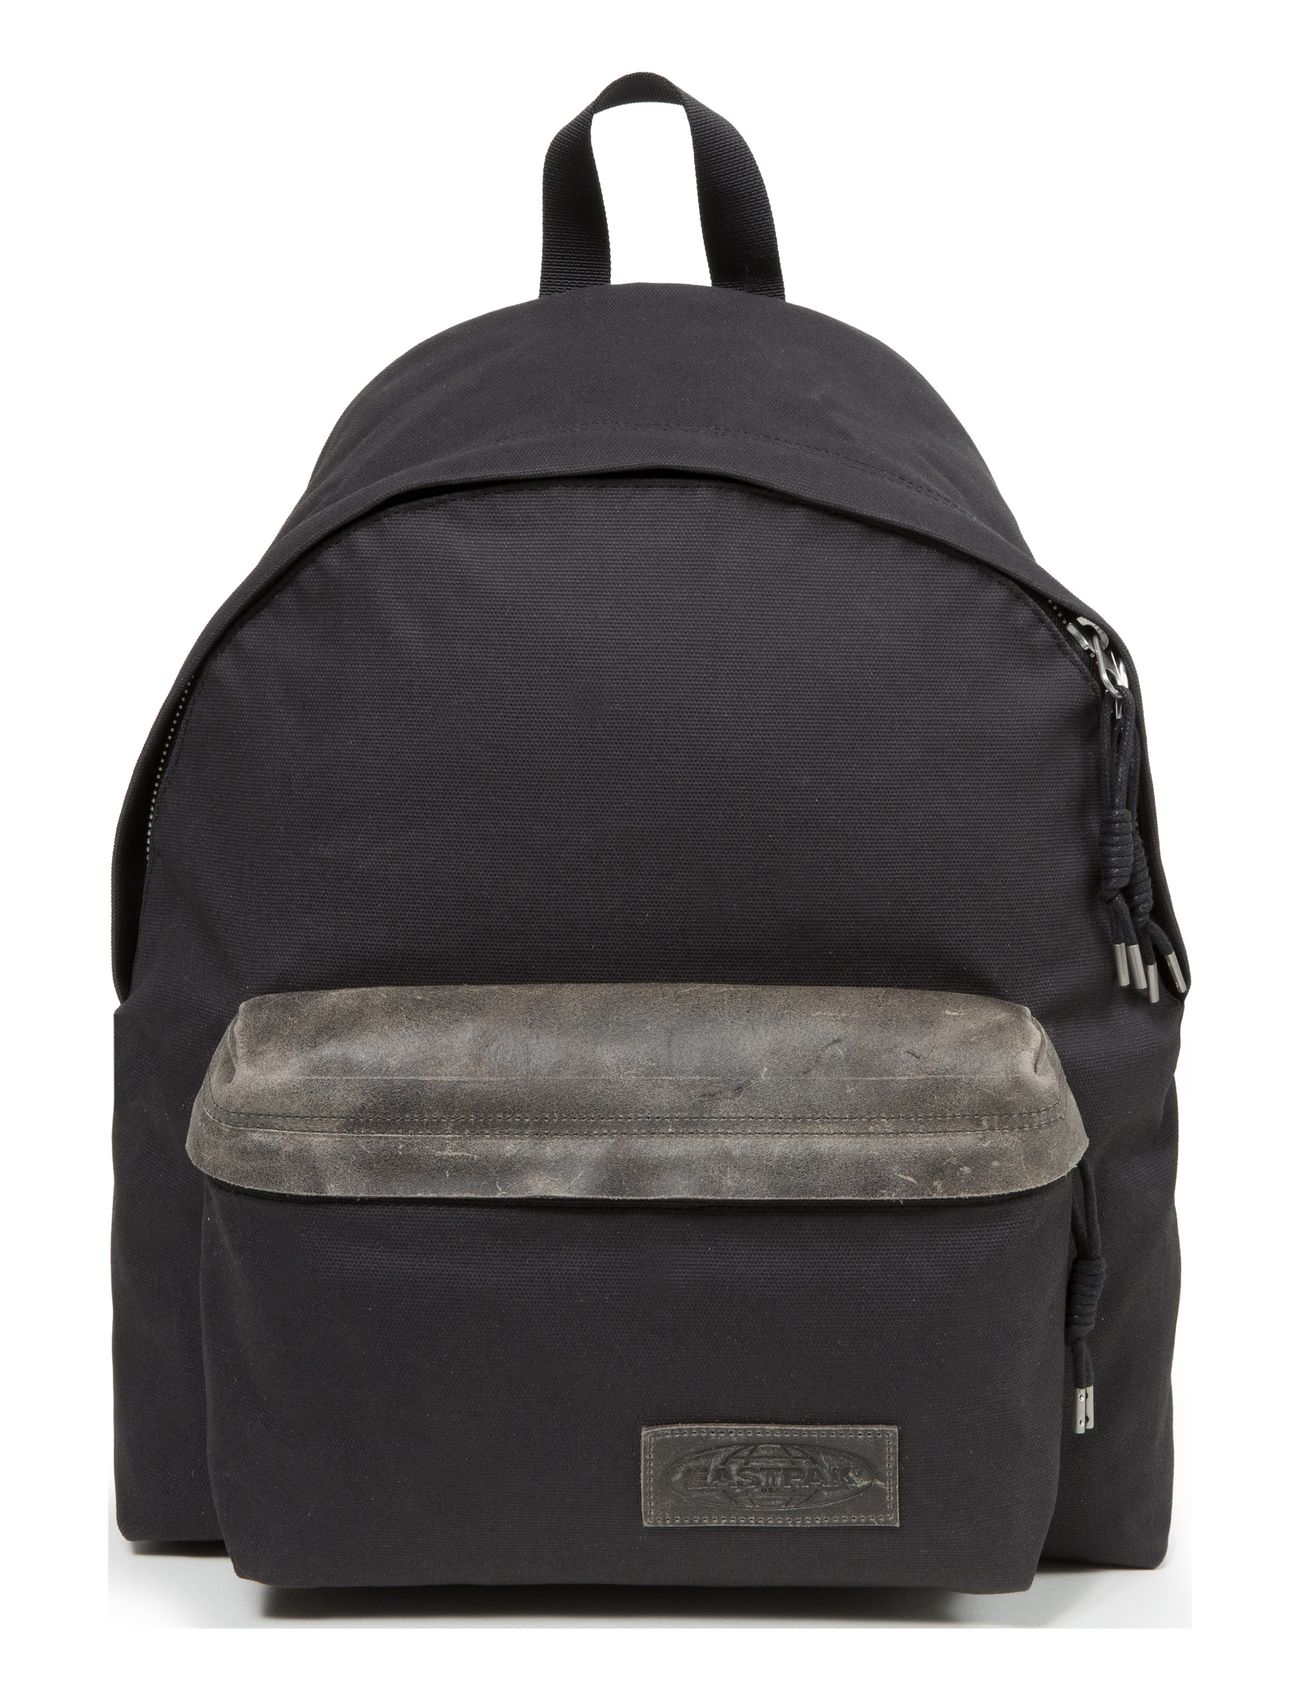 EASTPAK Padded Pak'R Accessories Backpacks Grau EASTPAK